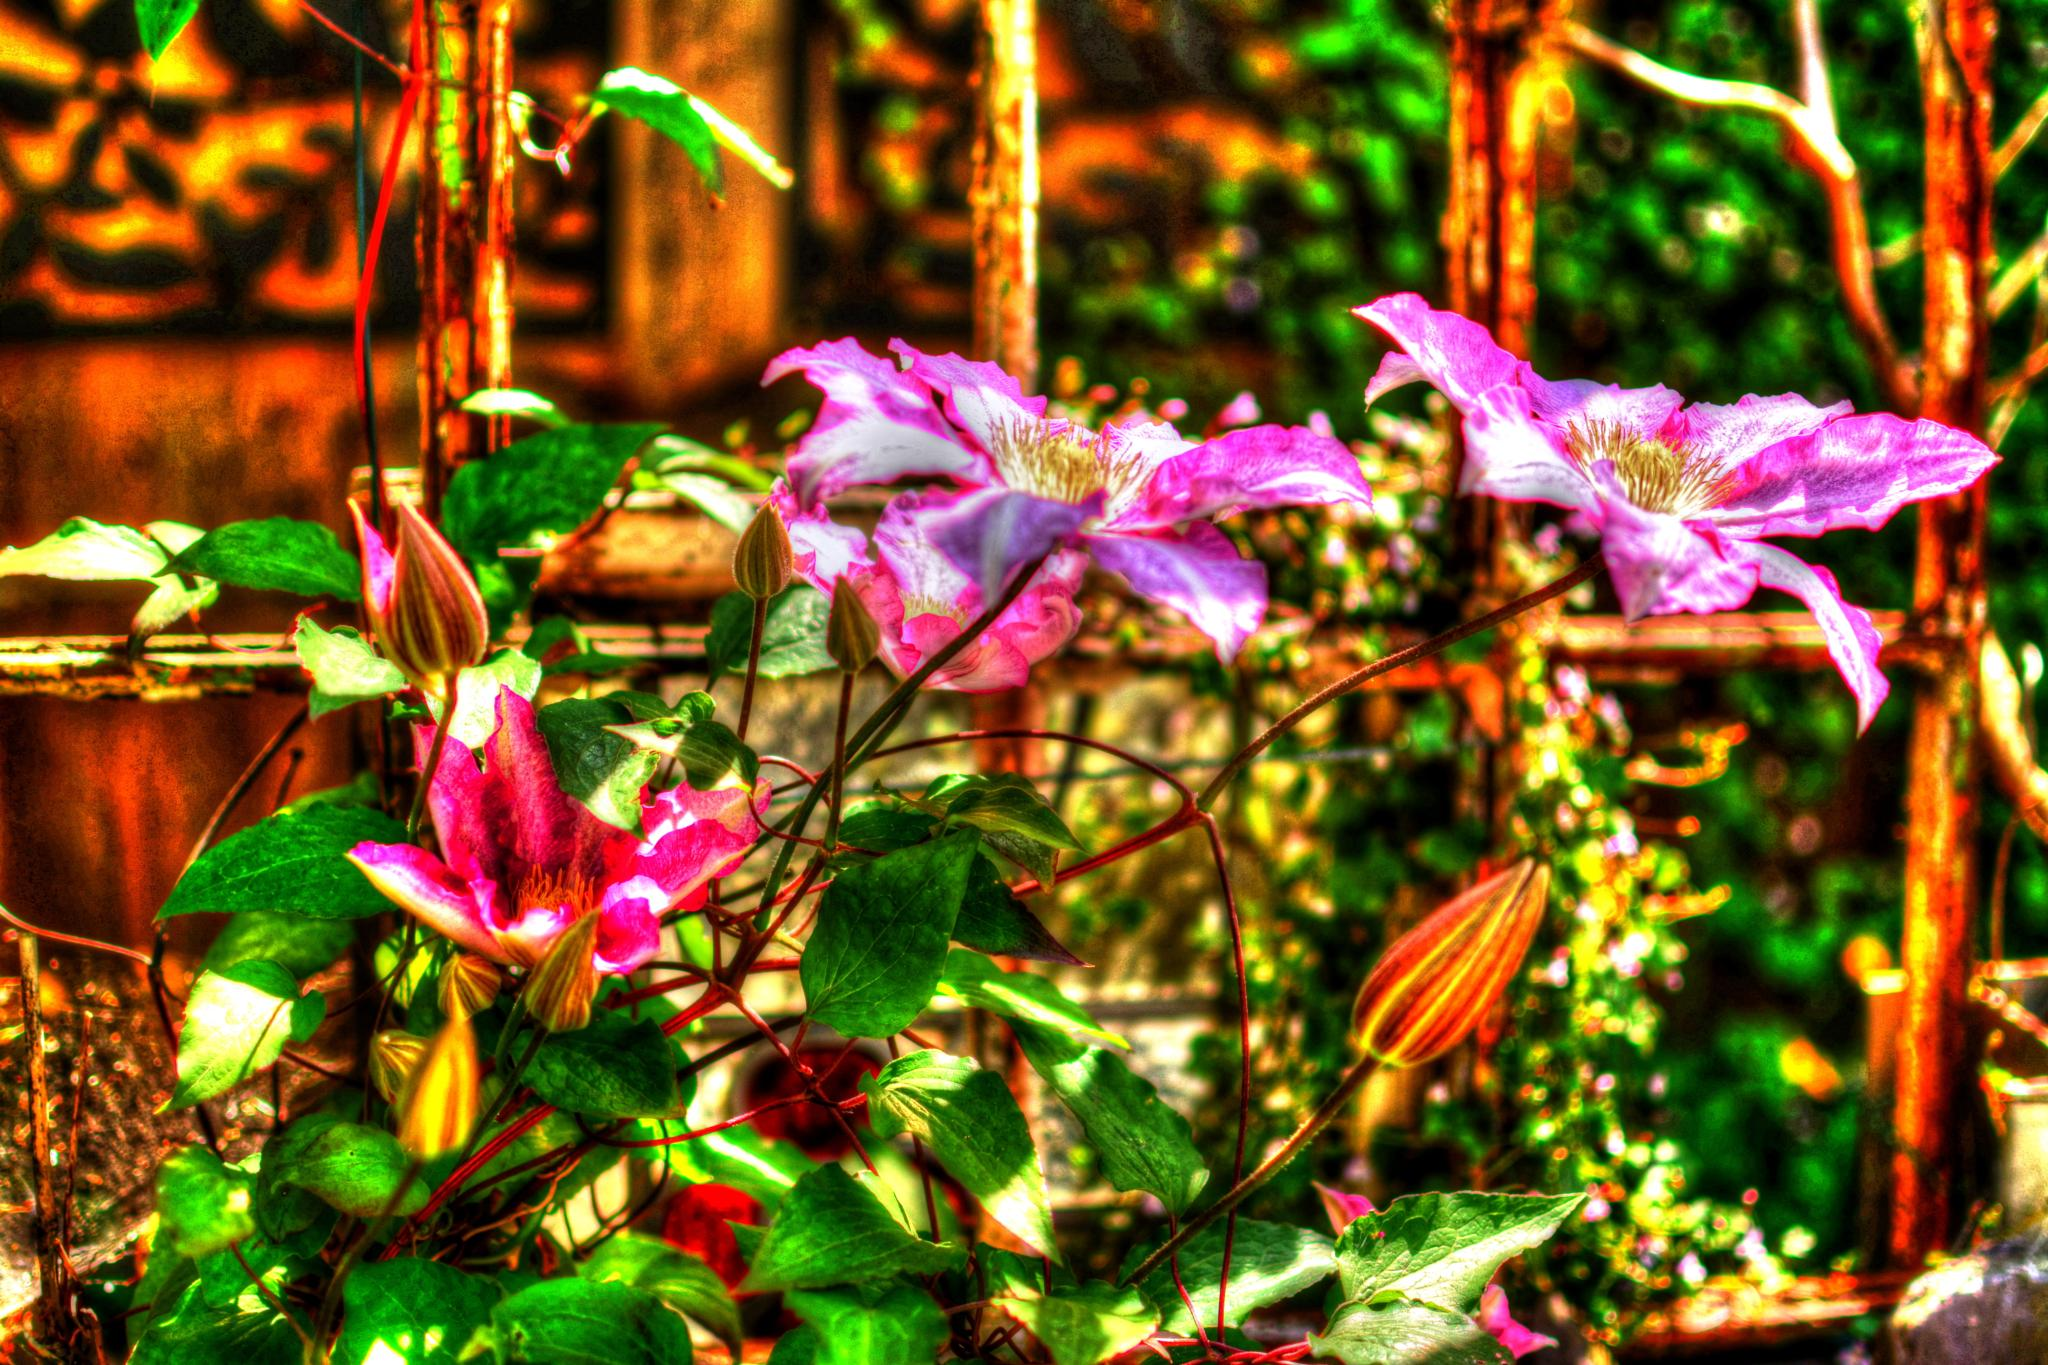 Clematis by Thunderchuckles